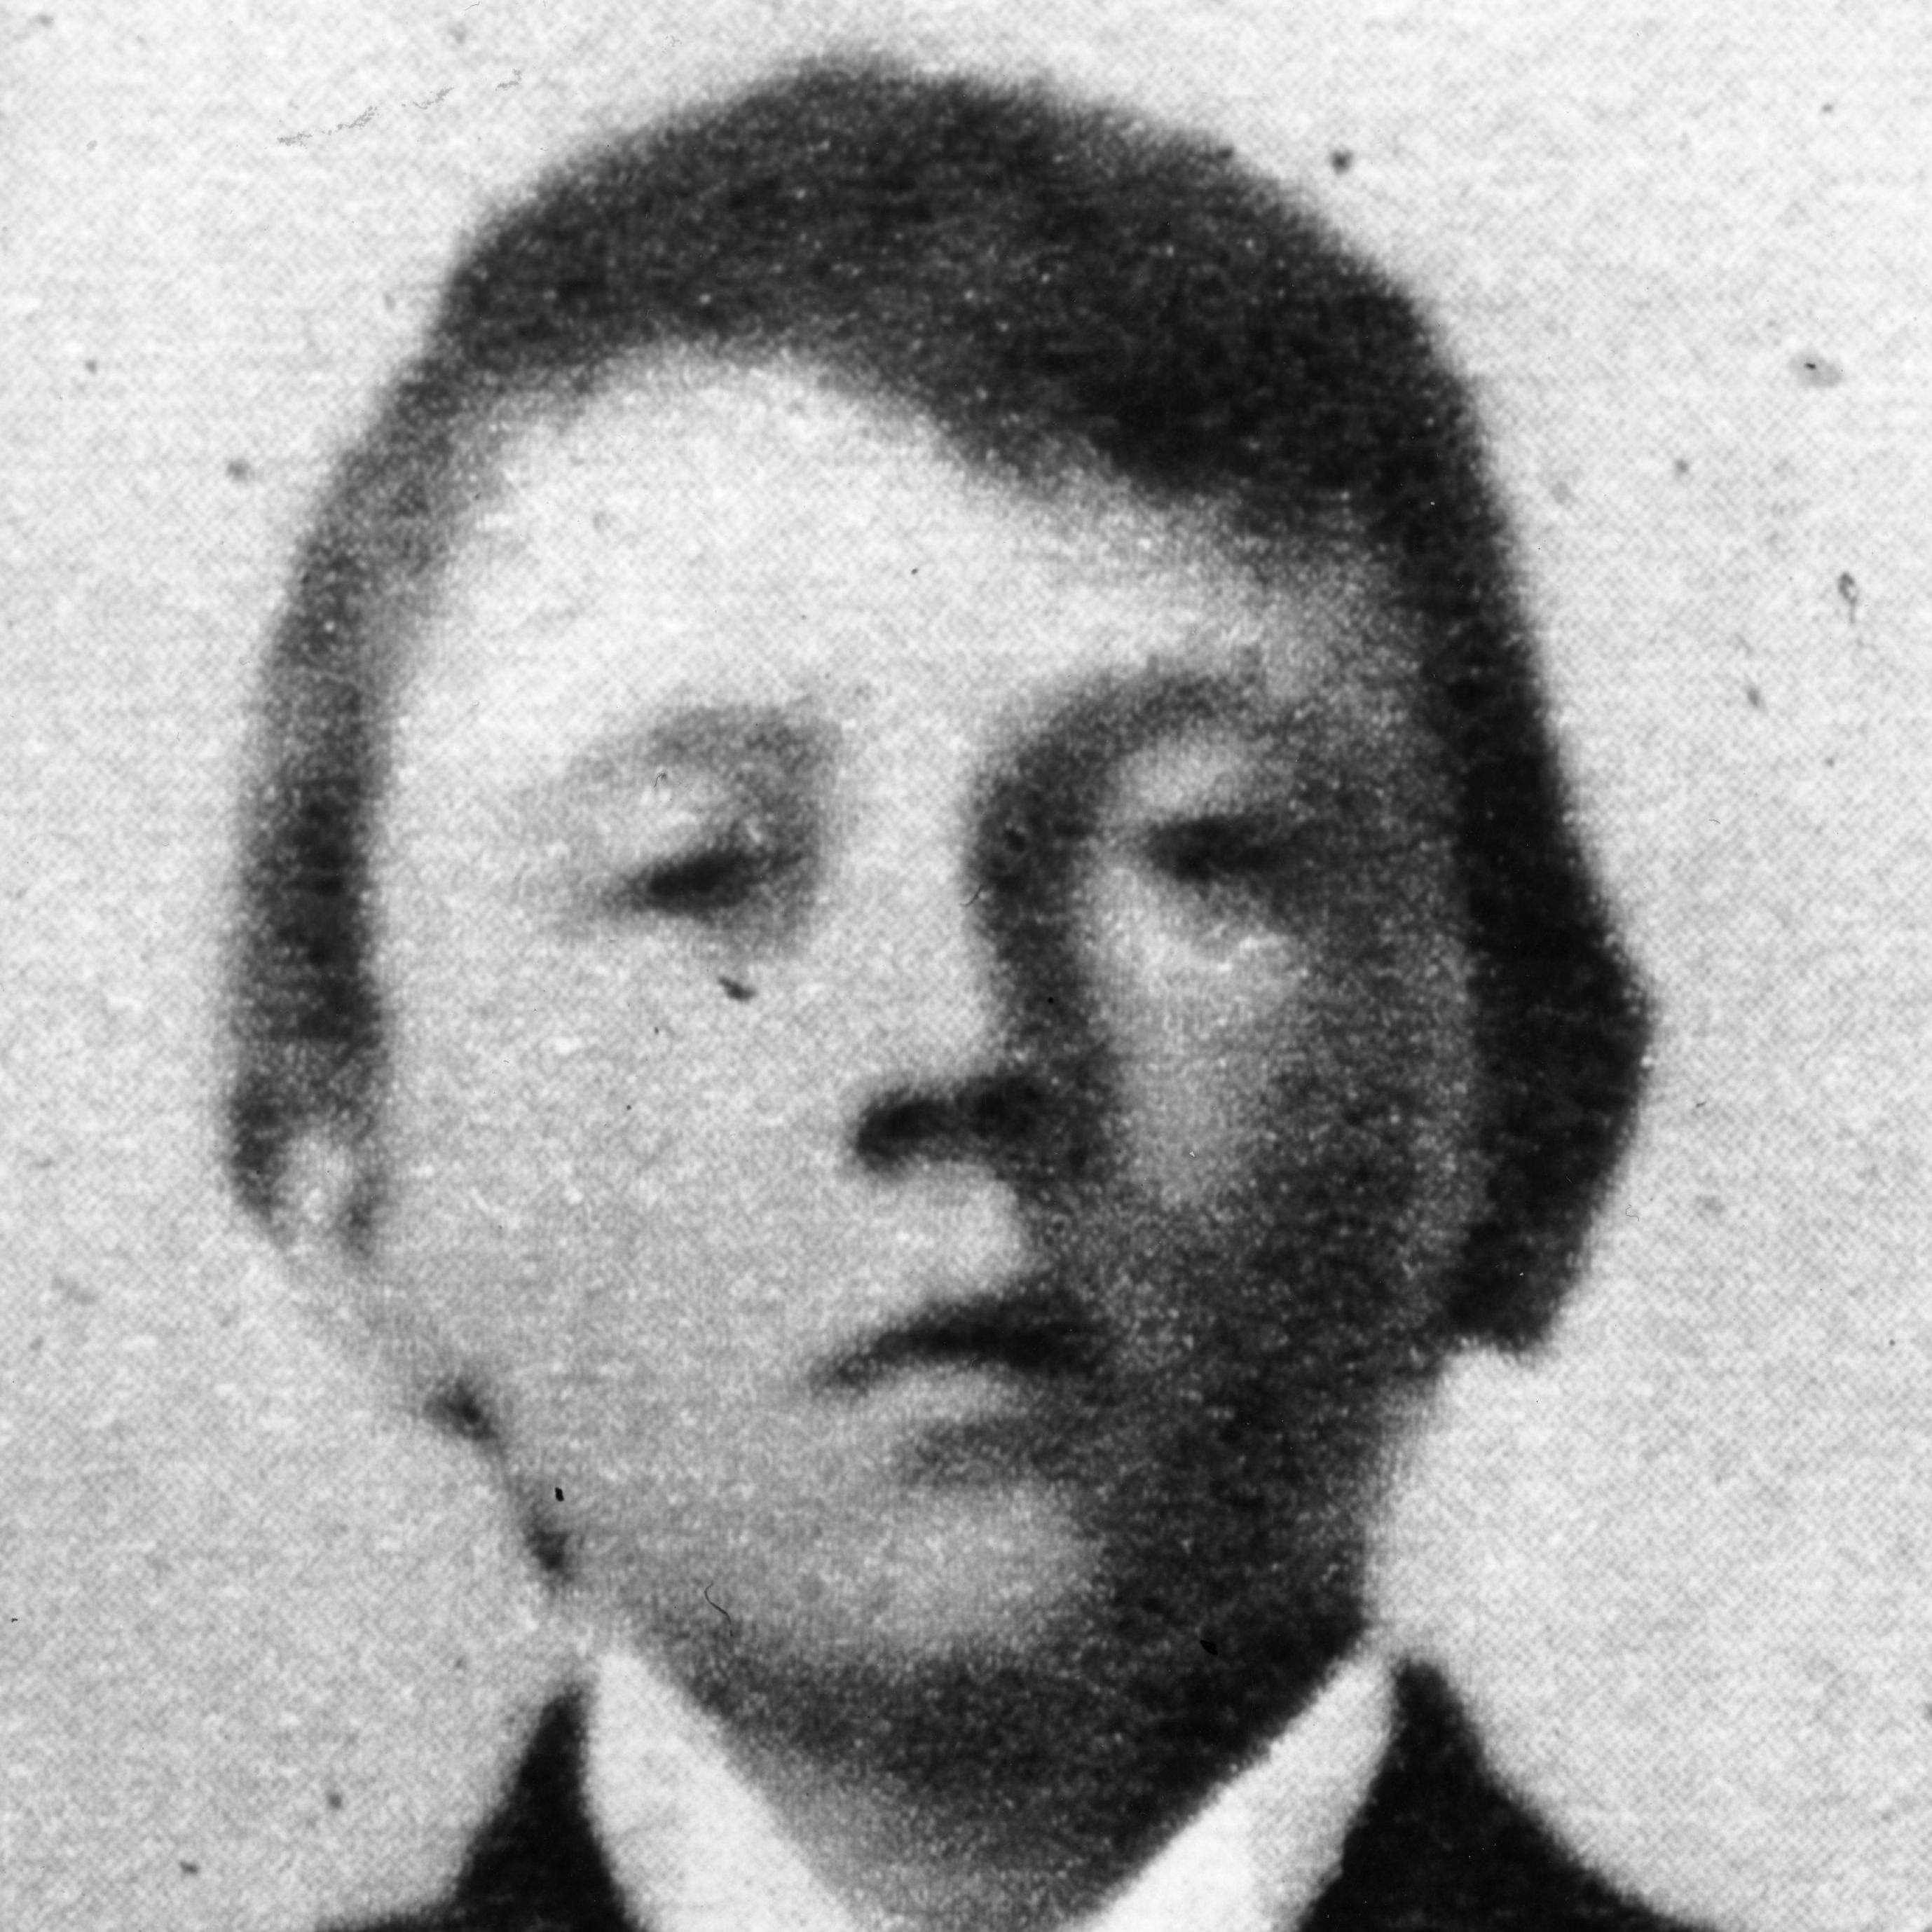 Austrian-born German dictator Adolf Hitler, as a ten year old boy.